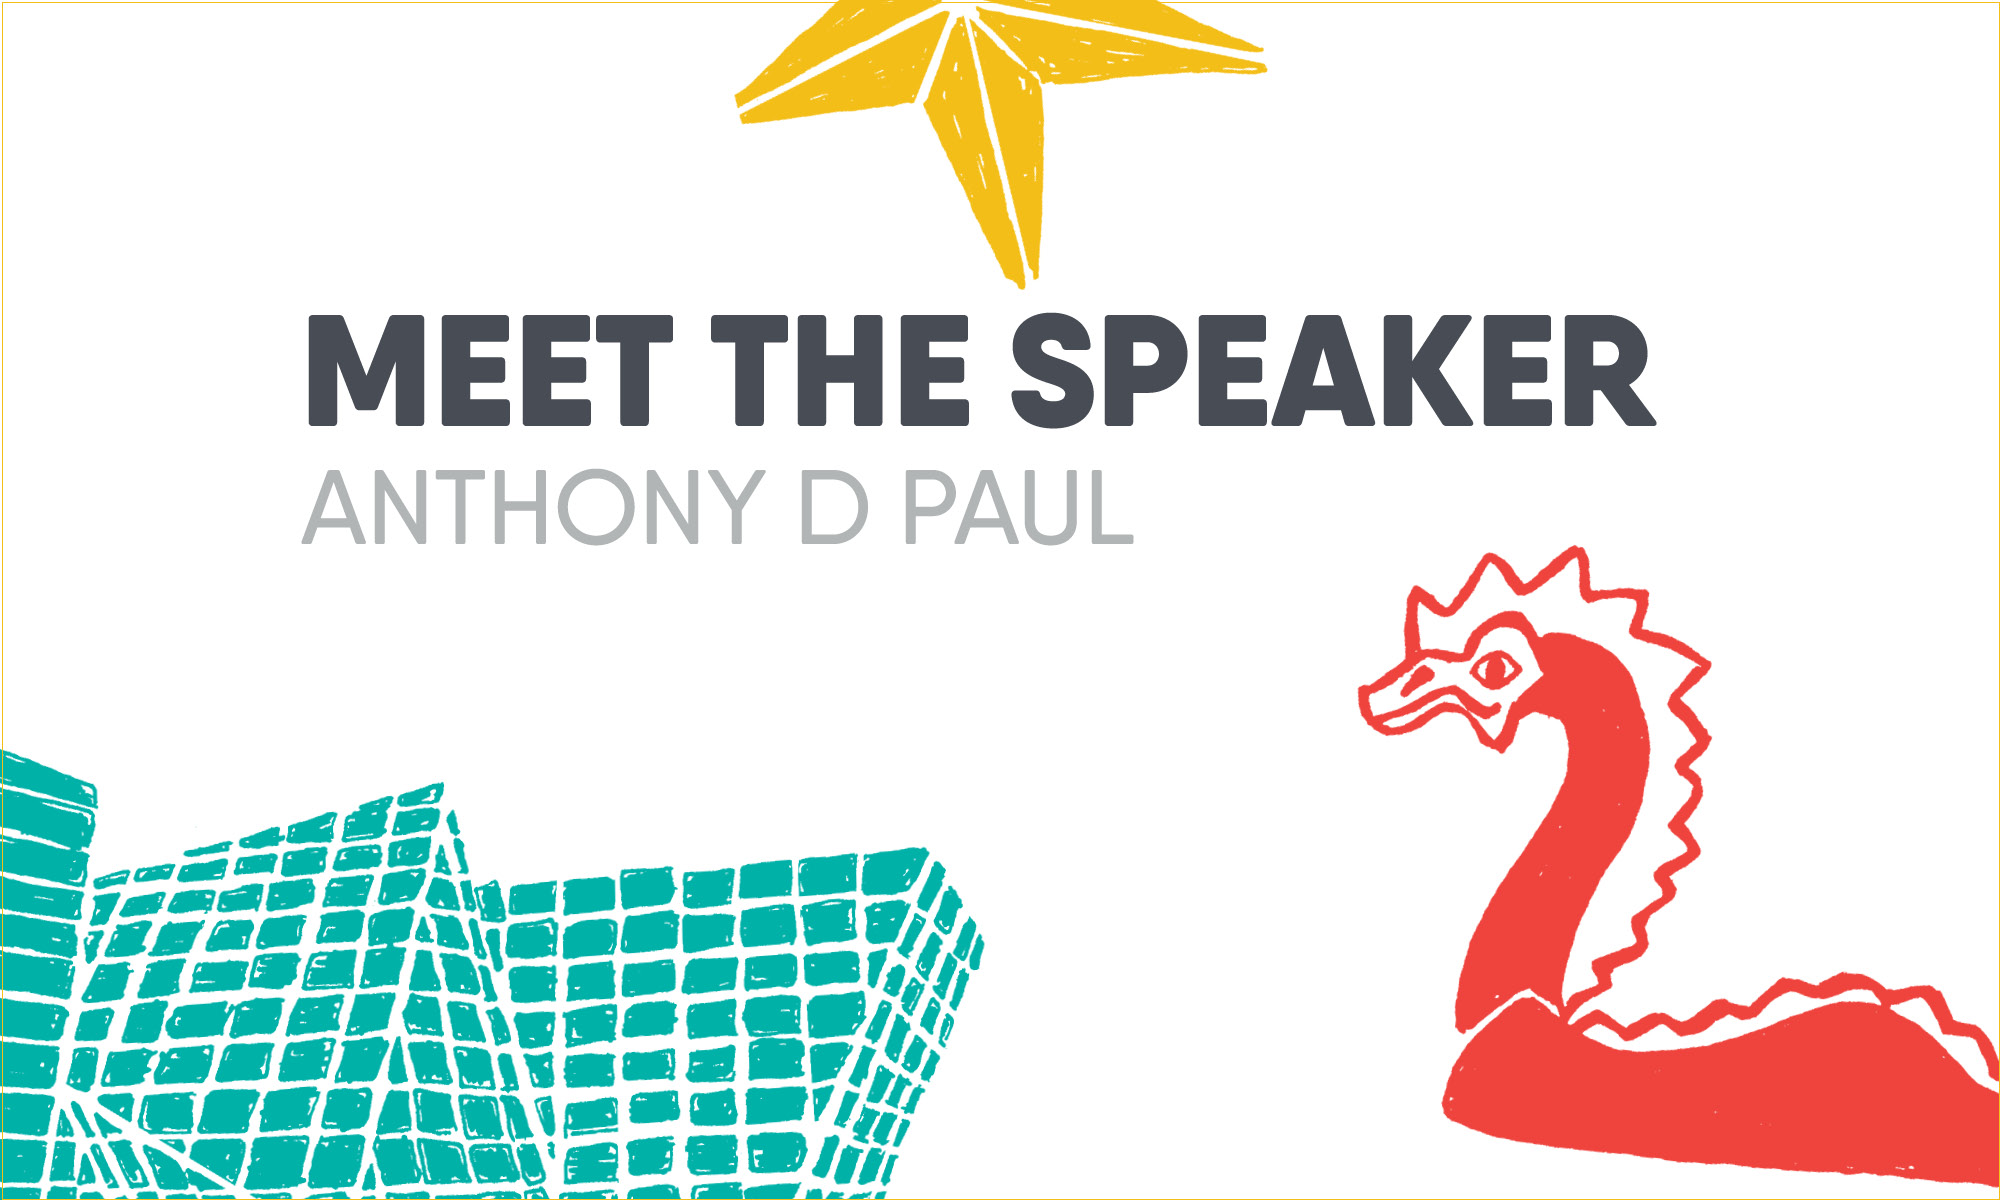 Meet the Speaker: Anthony D Paul